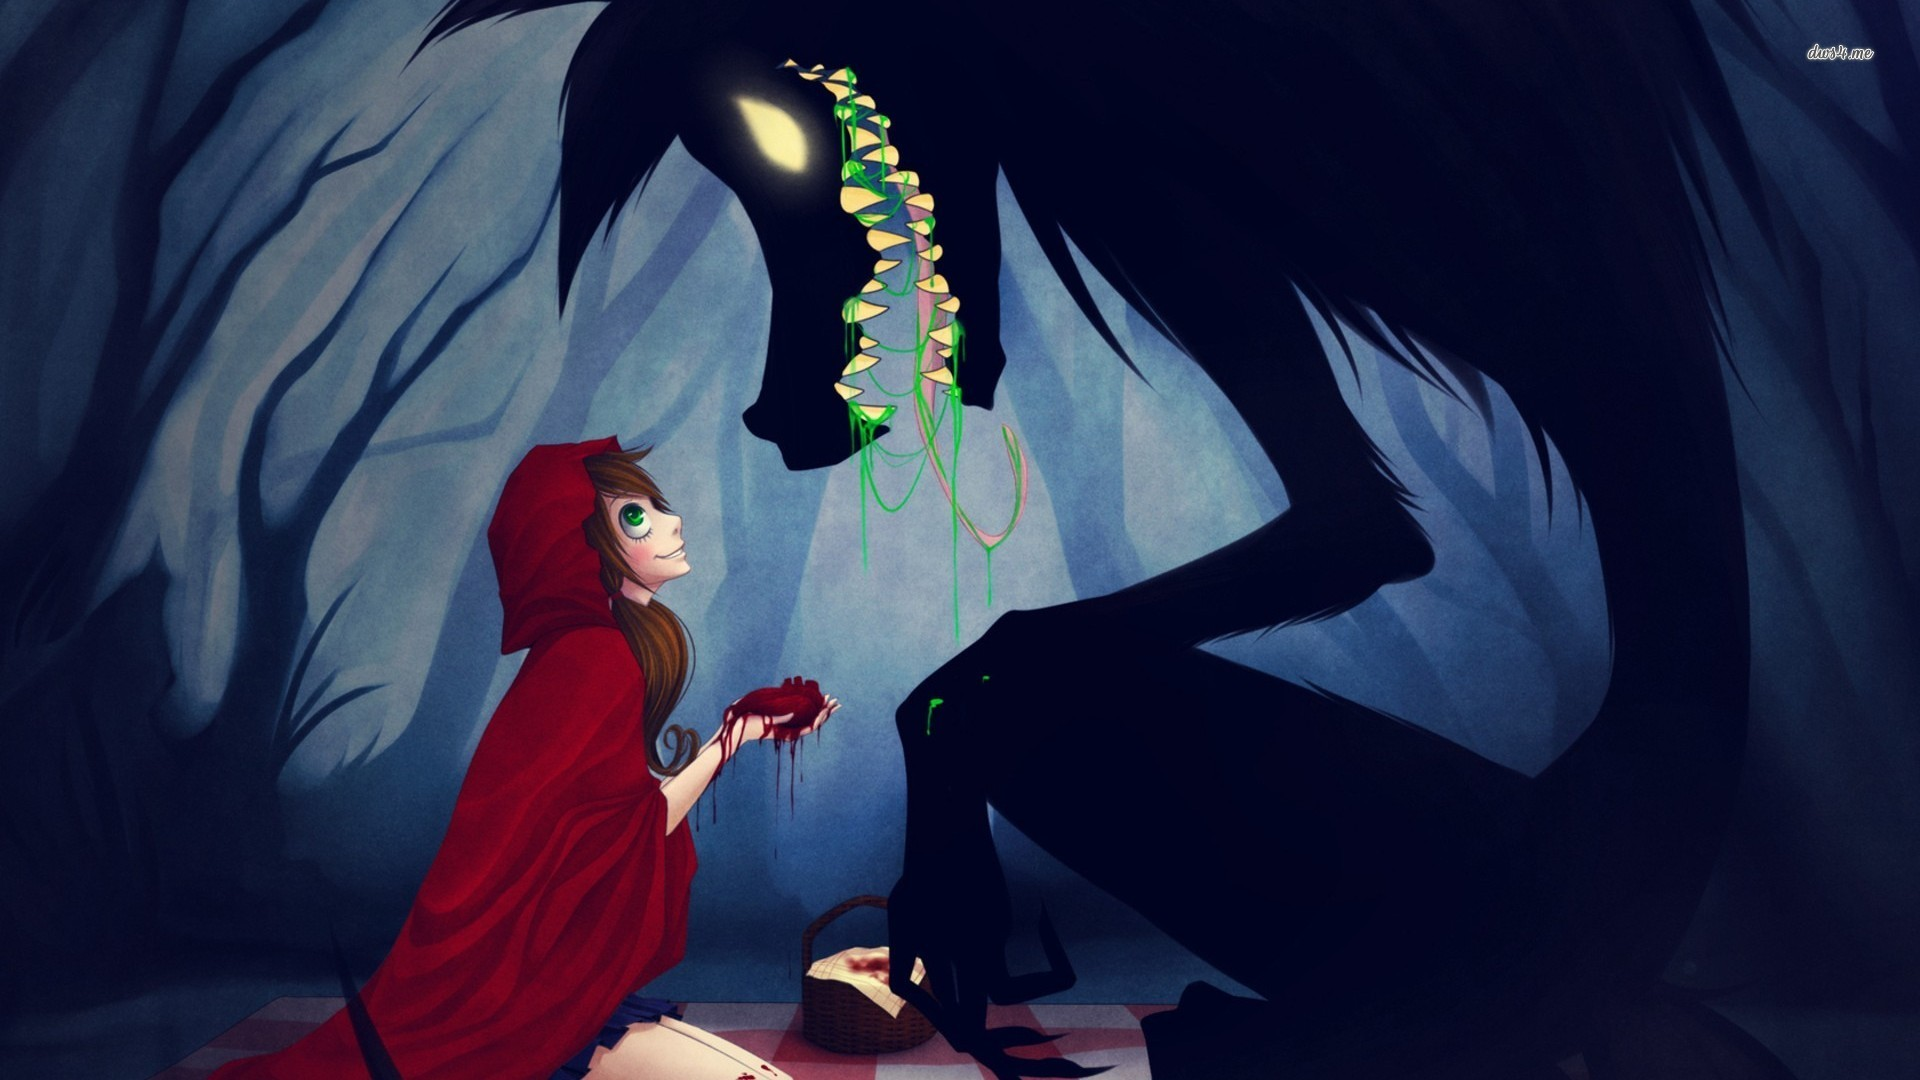 Creepy Red Riding Hood and the wolf wallpaper